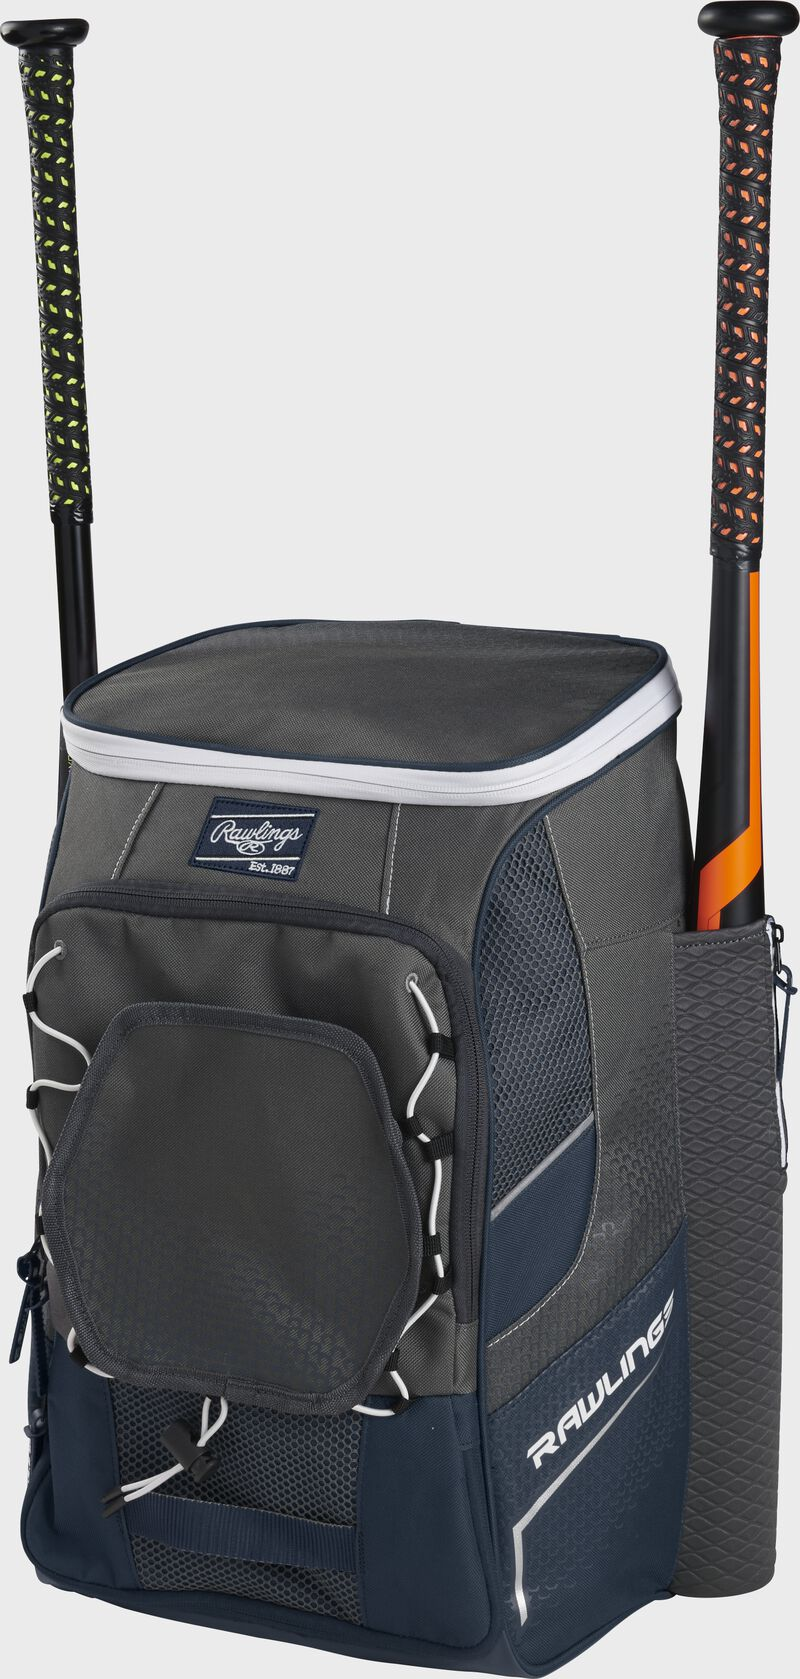 Front right angle view of a navy Impulse backpack with two bats in the side sleeves - SKU: IMPLSE-N